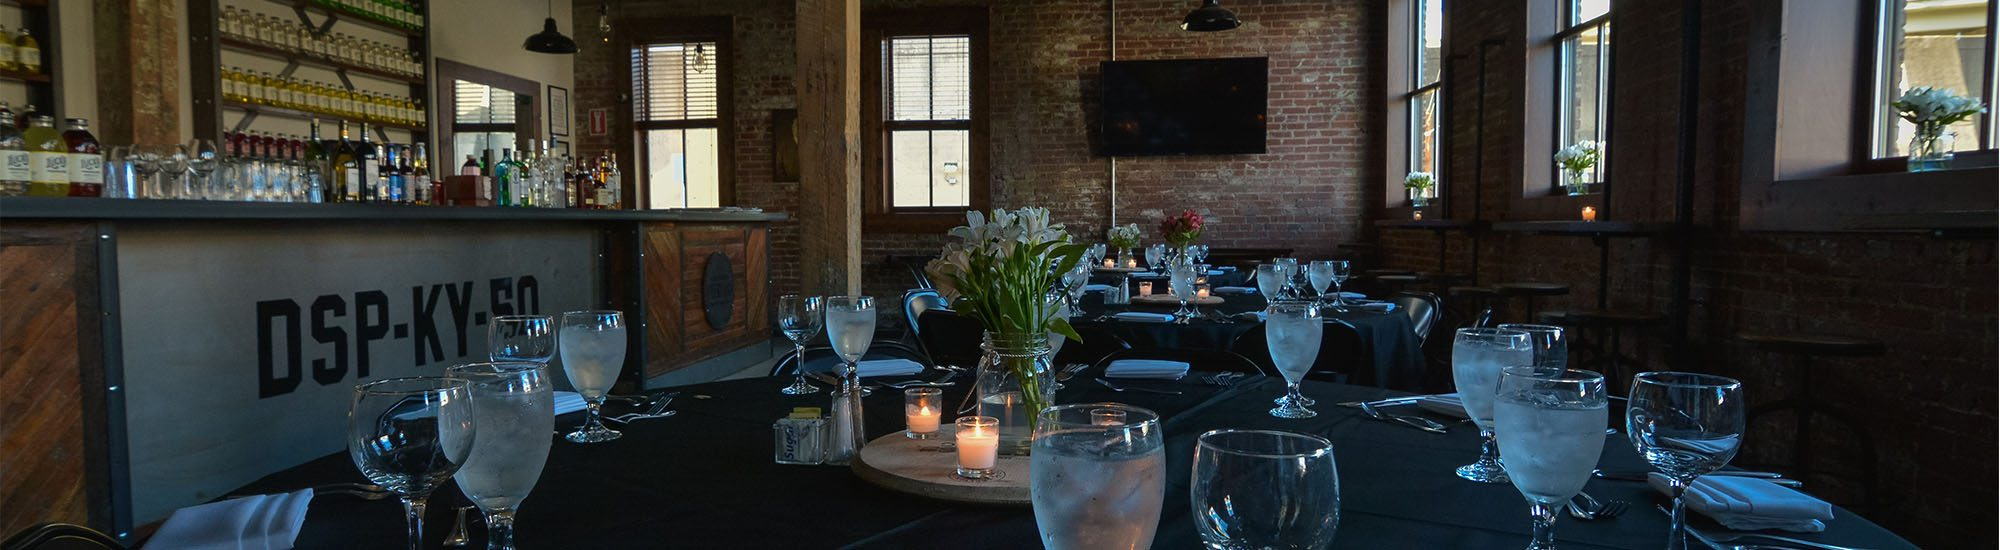 Event space rental louisville